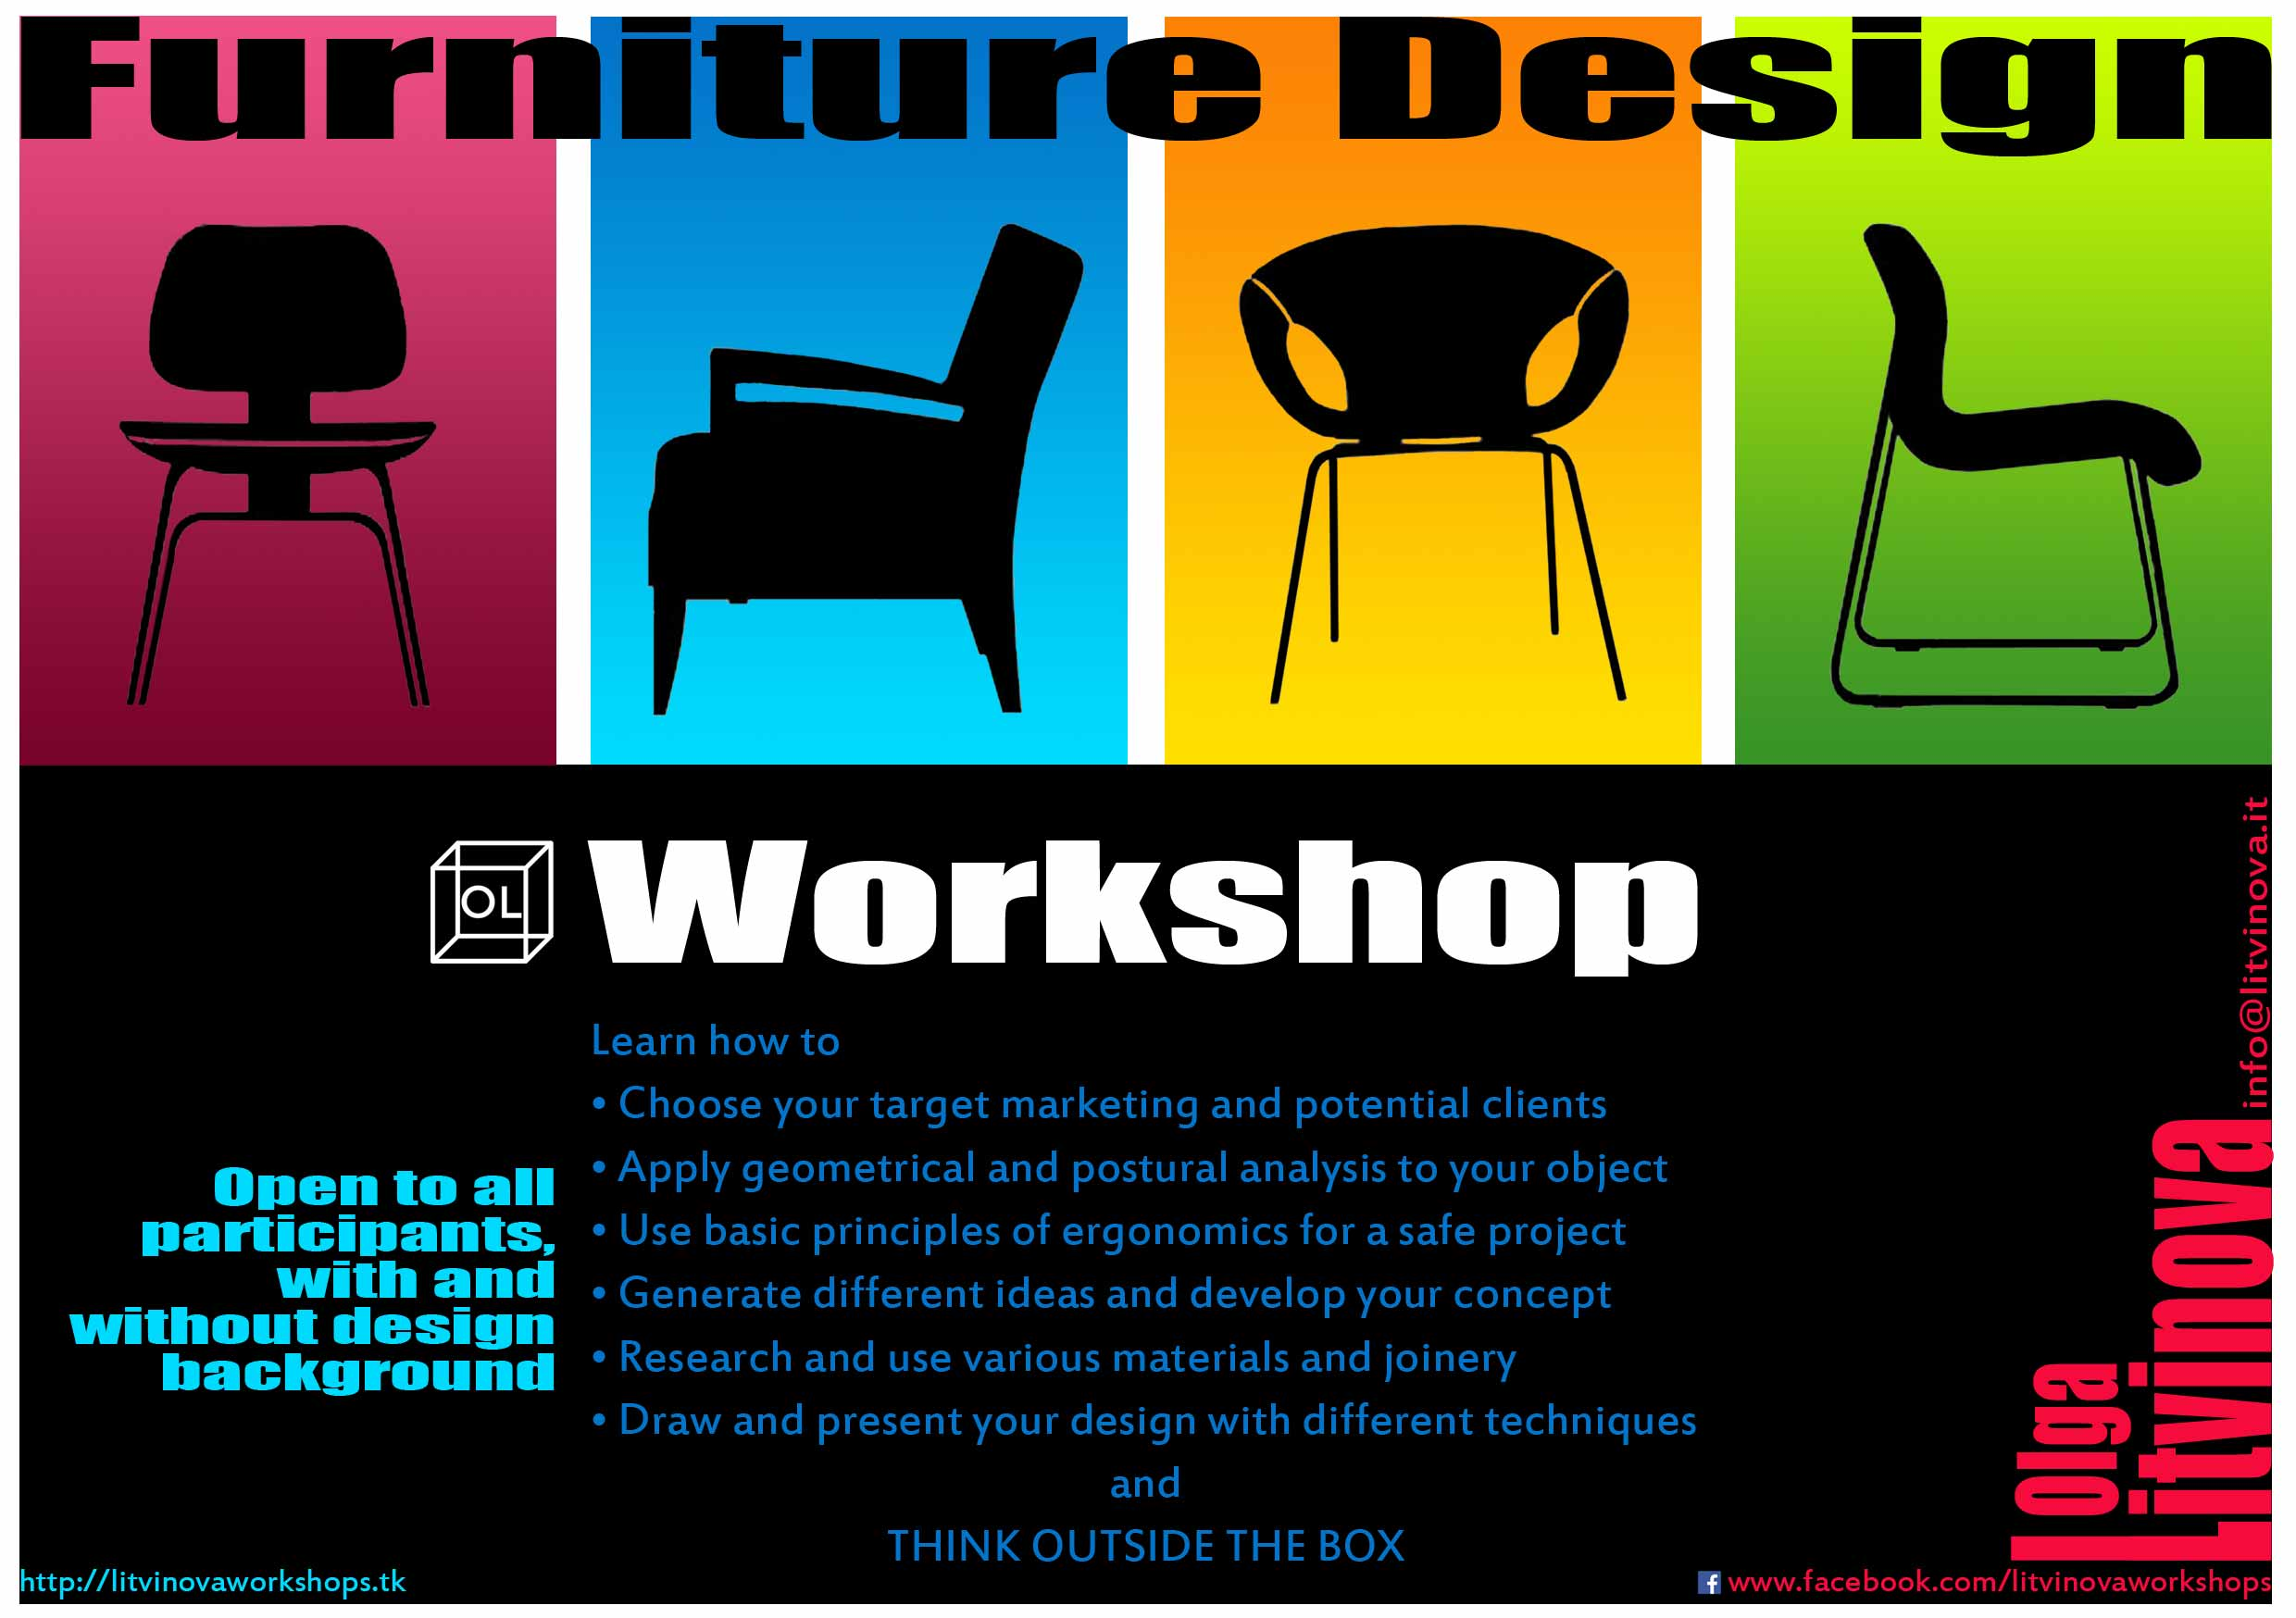 Furniture design workshop